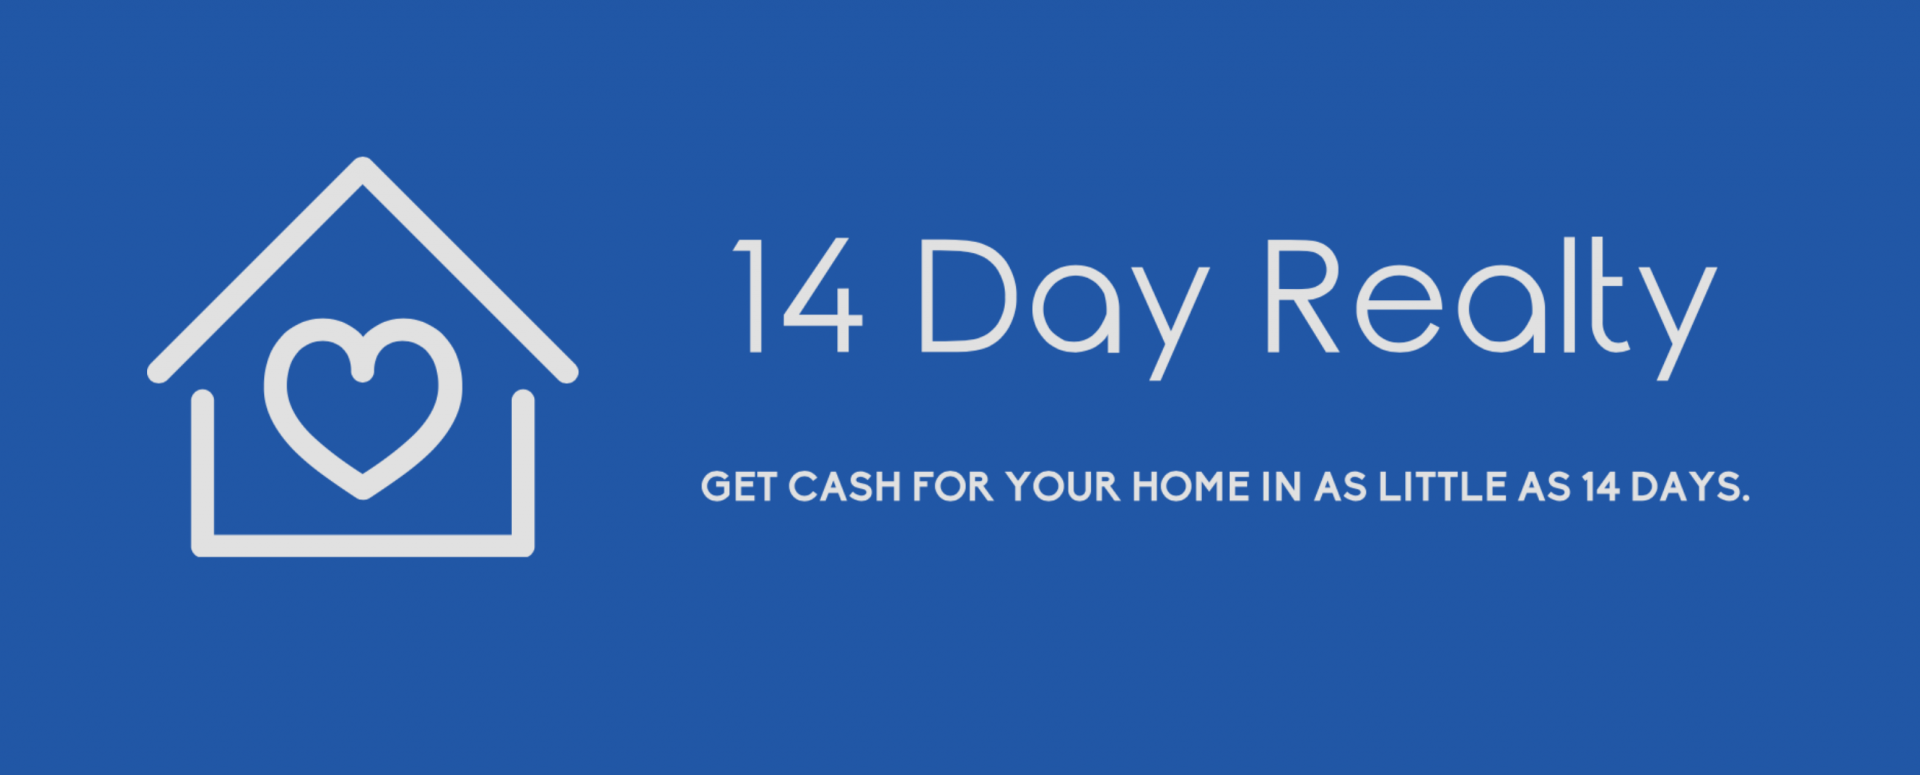 14 Day Realty  logo